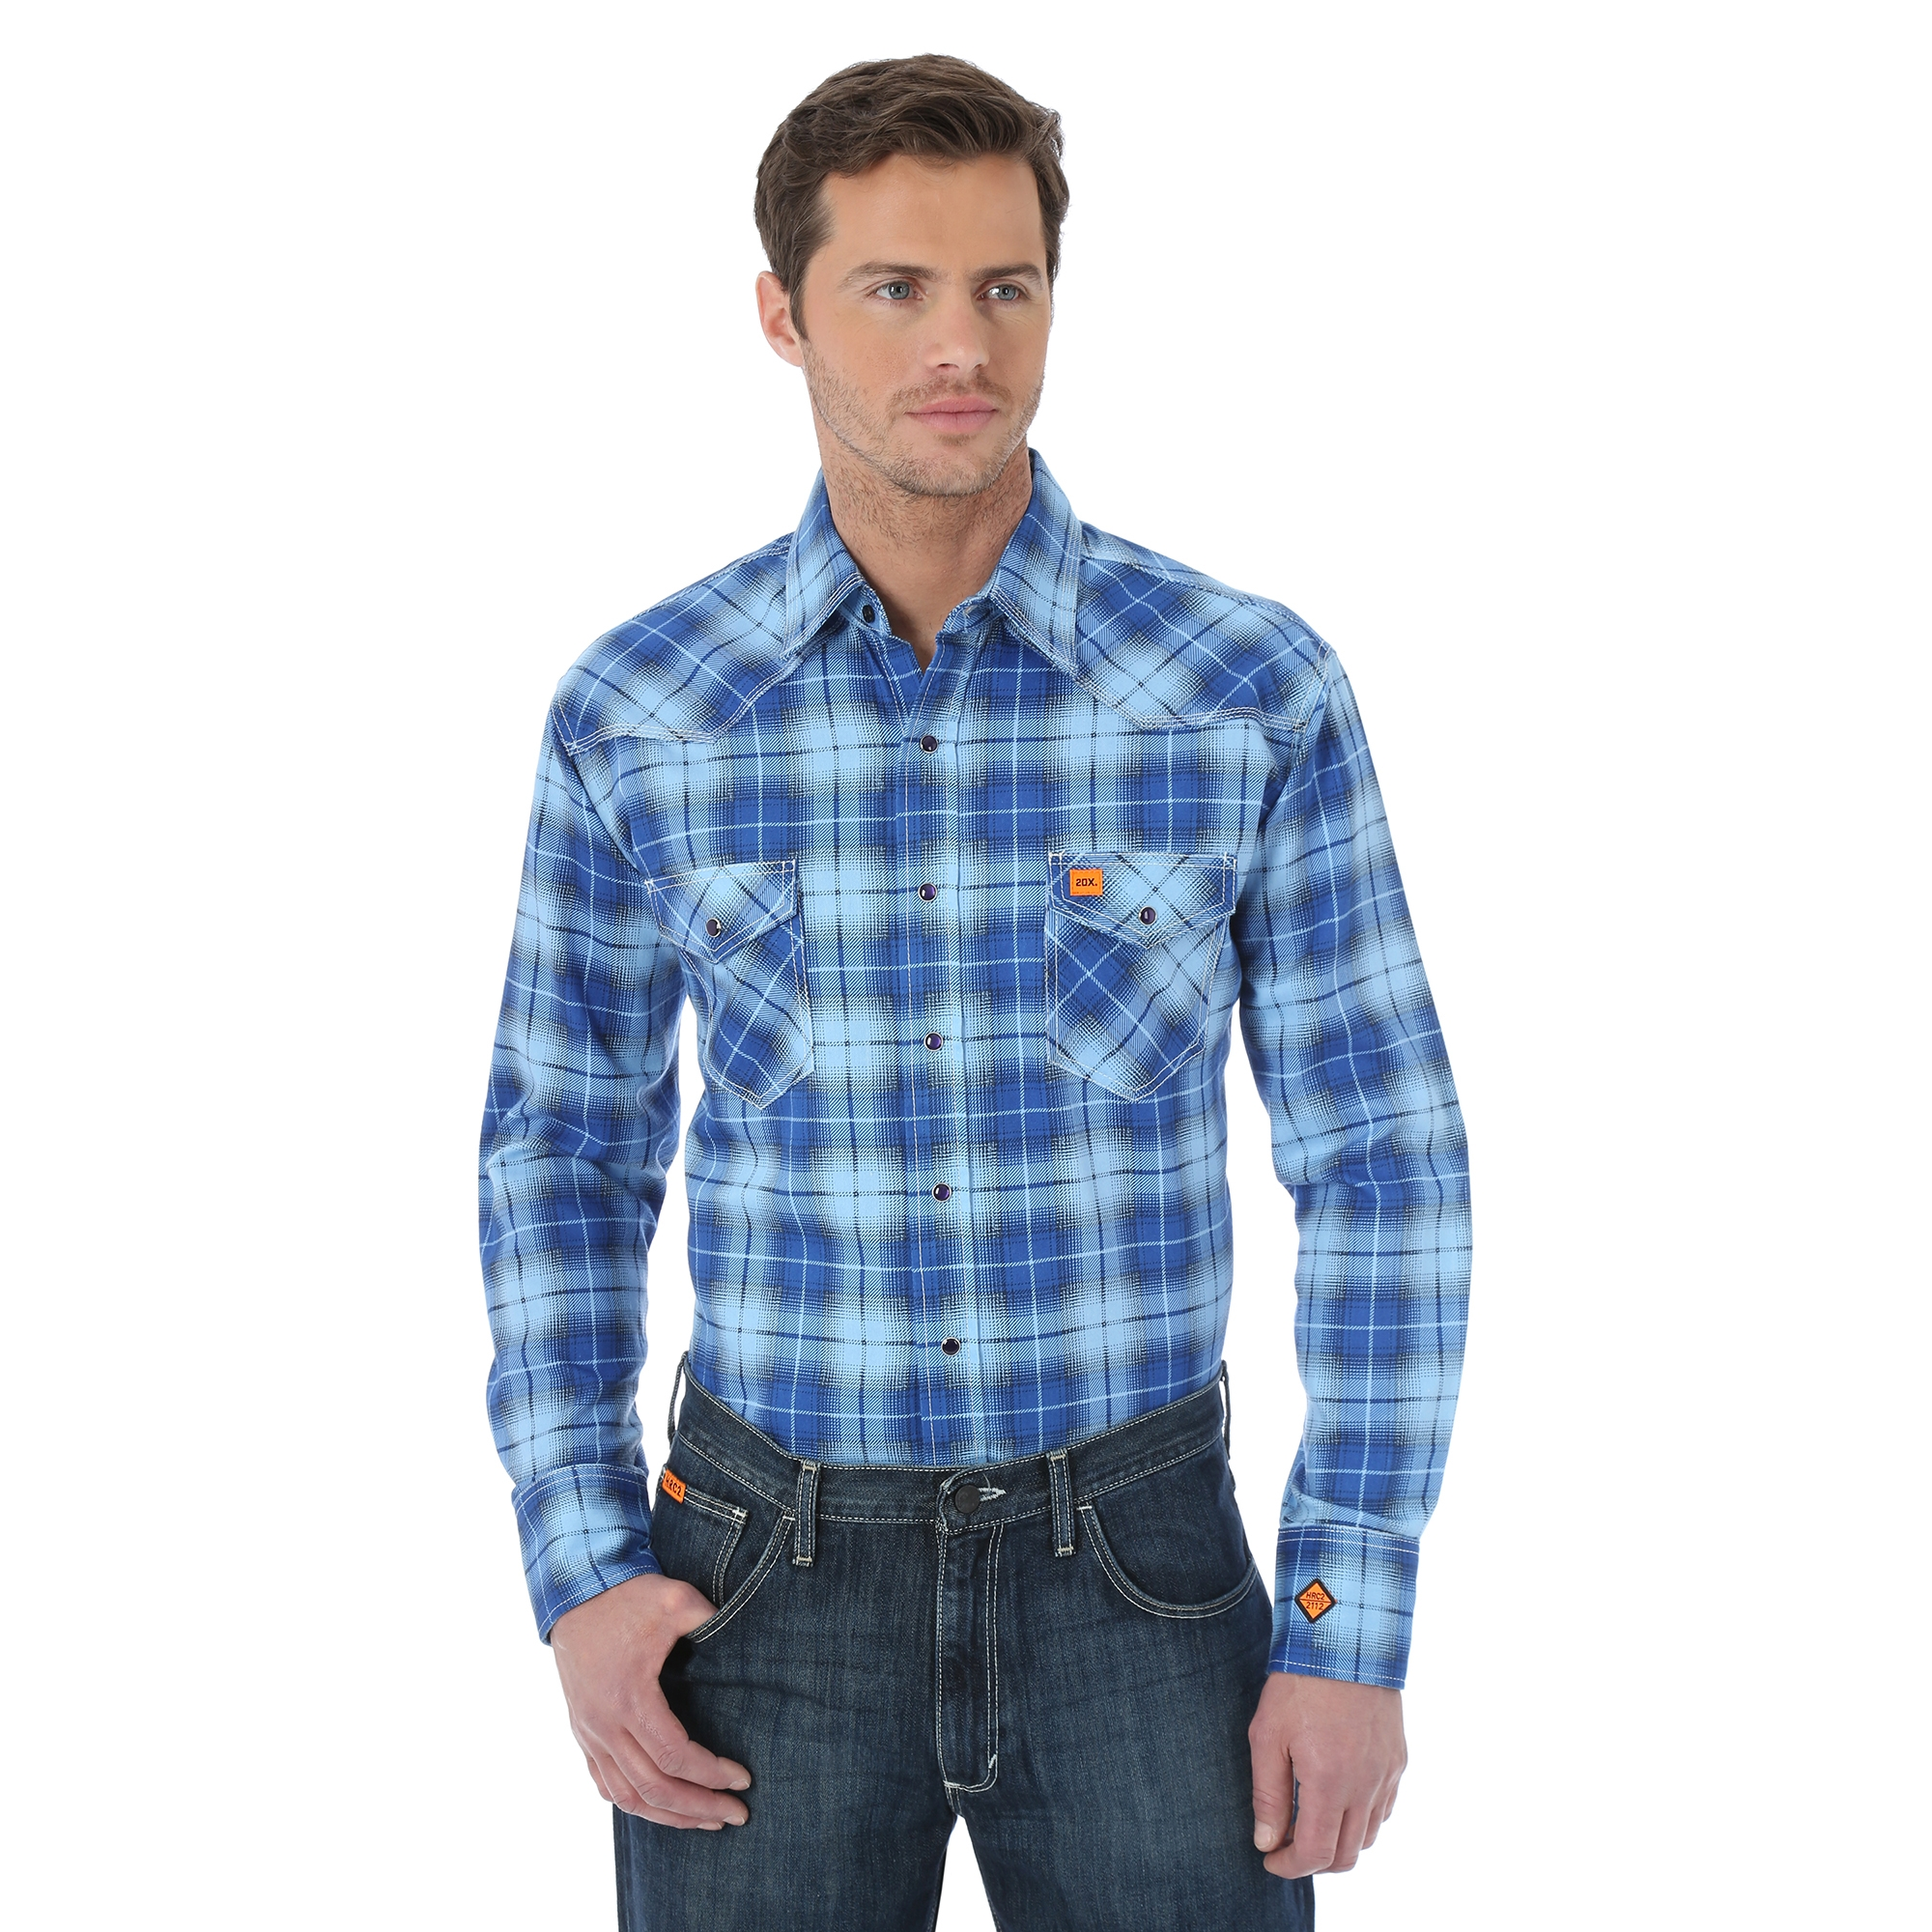 WRANGLER® FLAME RESISTANT 20X® LONG SLEEVE WORK SHIRT- Blue Plaid-Wrangler FR